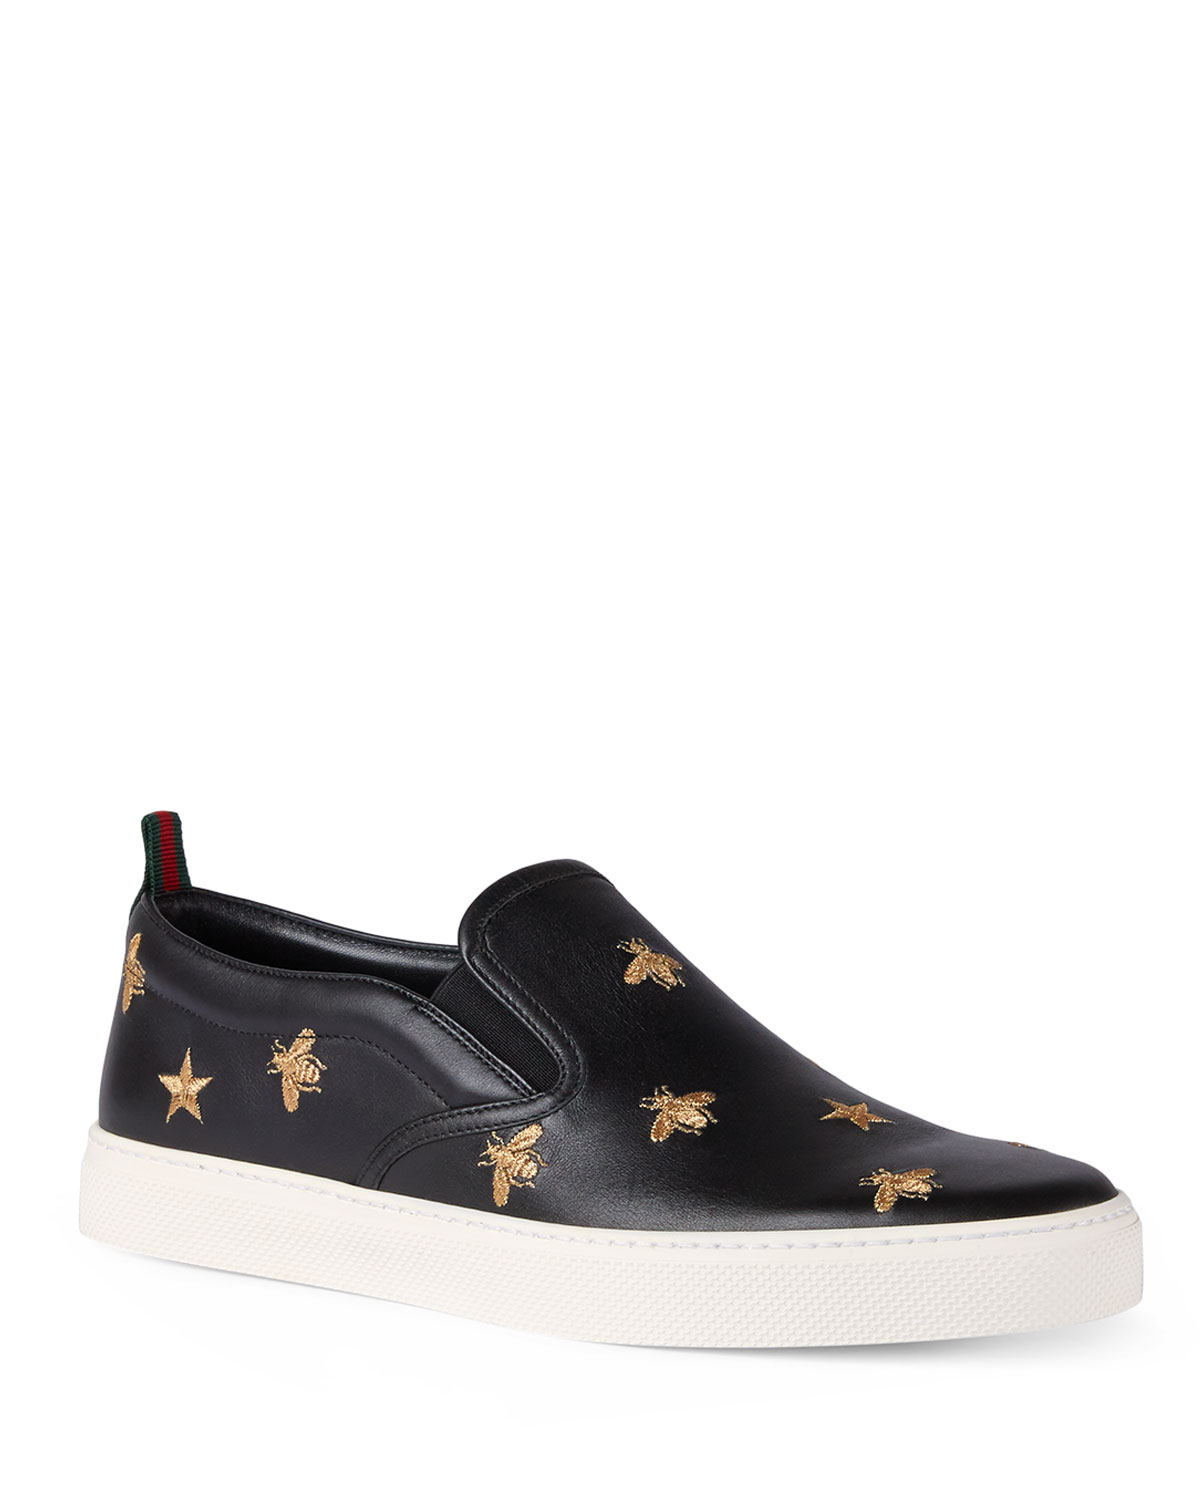 ed144198c Gucci Men's Dublin Bee & Star Embroidered Leather Slip-On Sneakers ...